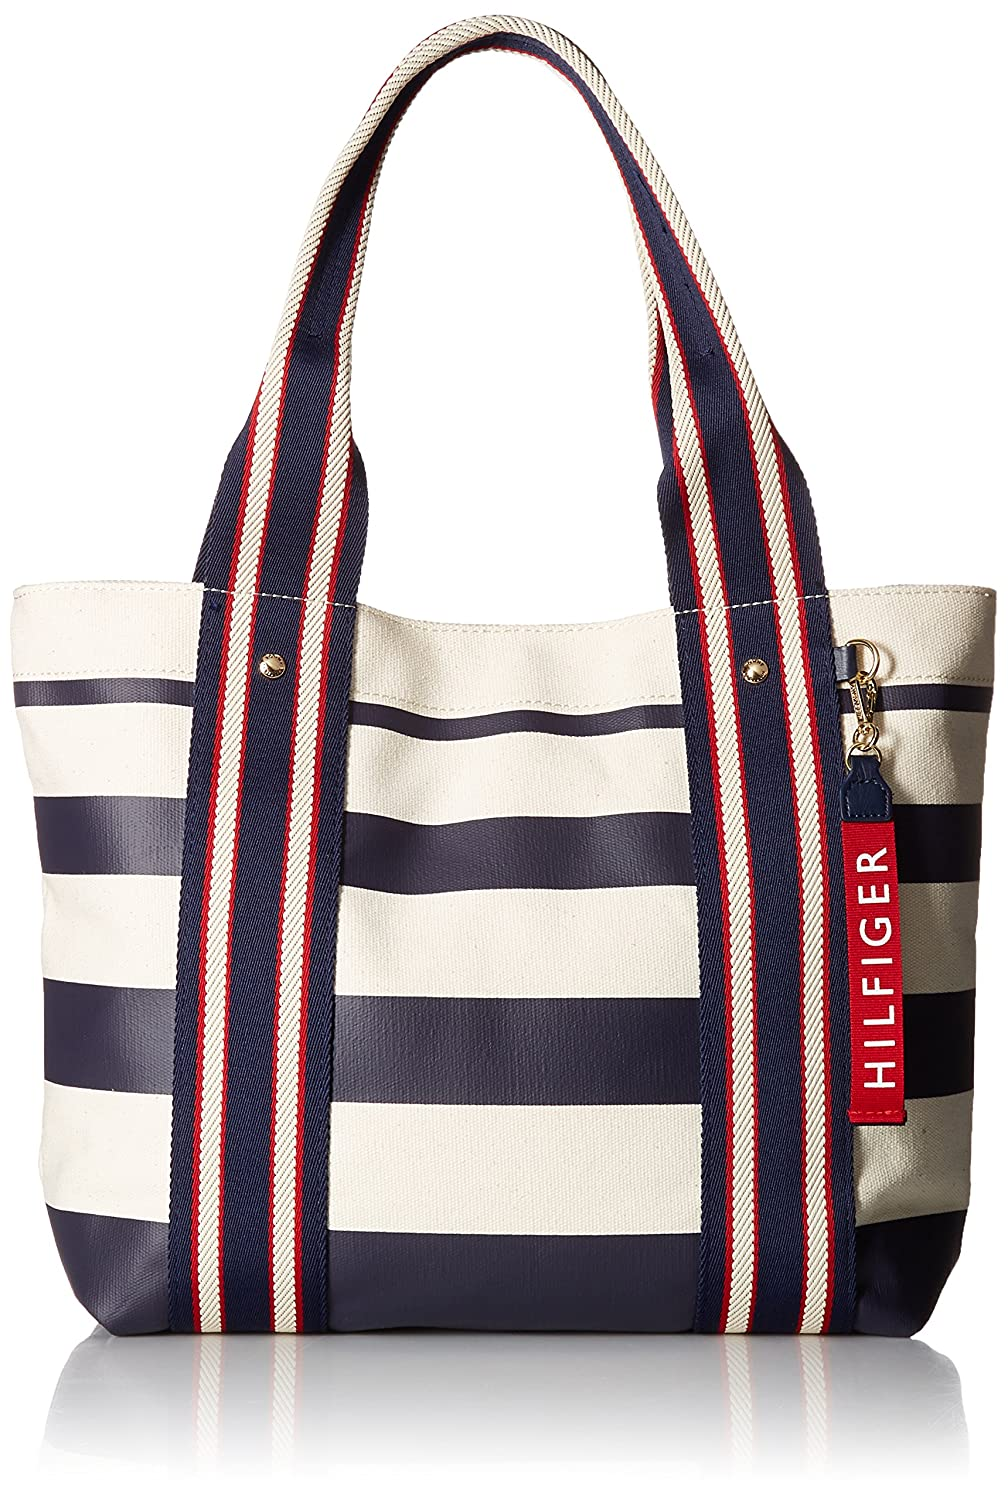 c0611e162b1a Amazon.com: Tommy Hilfiger Bag for Women Canvas Item Shopper: Clothing